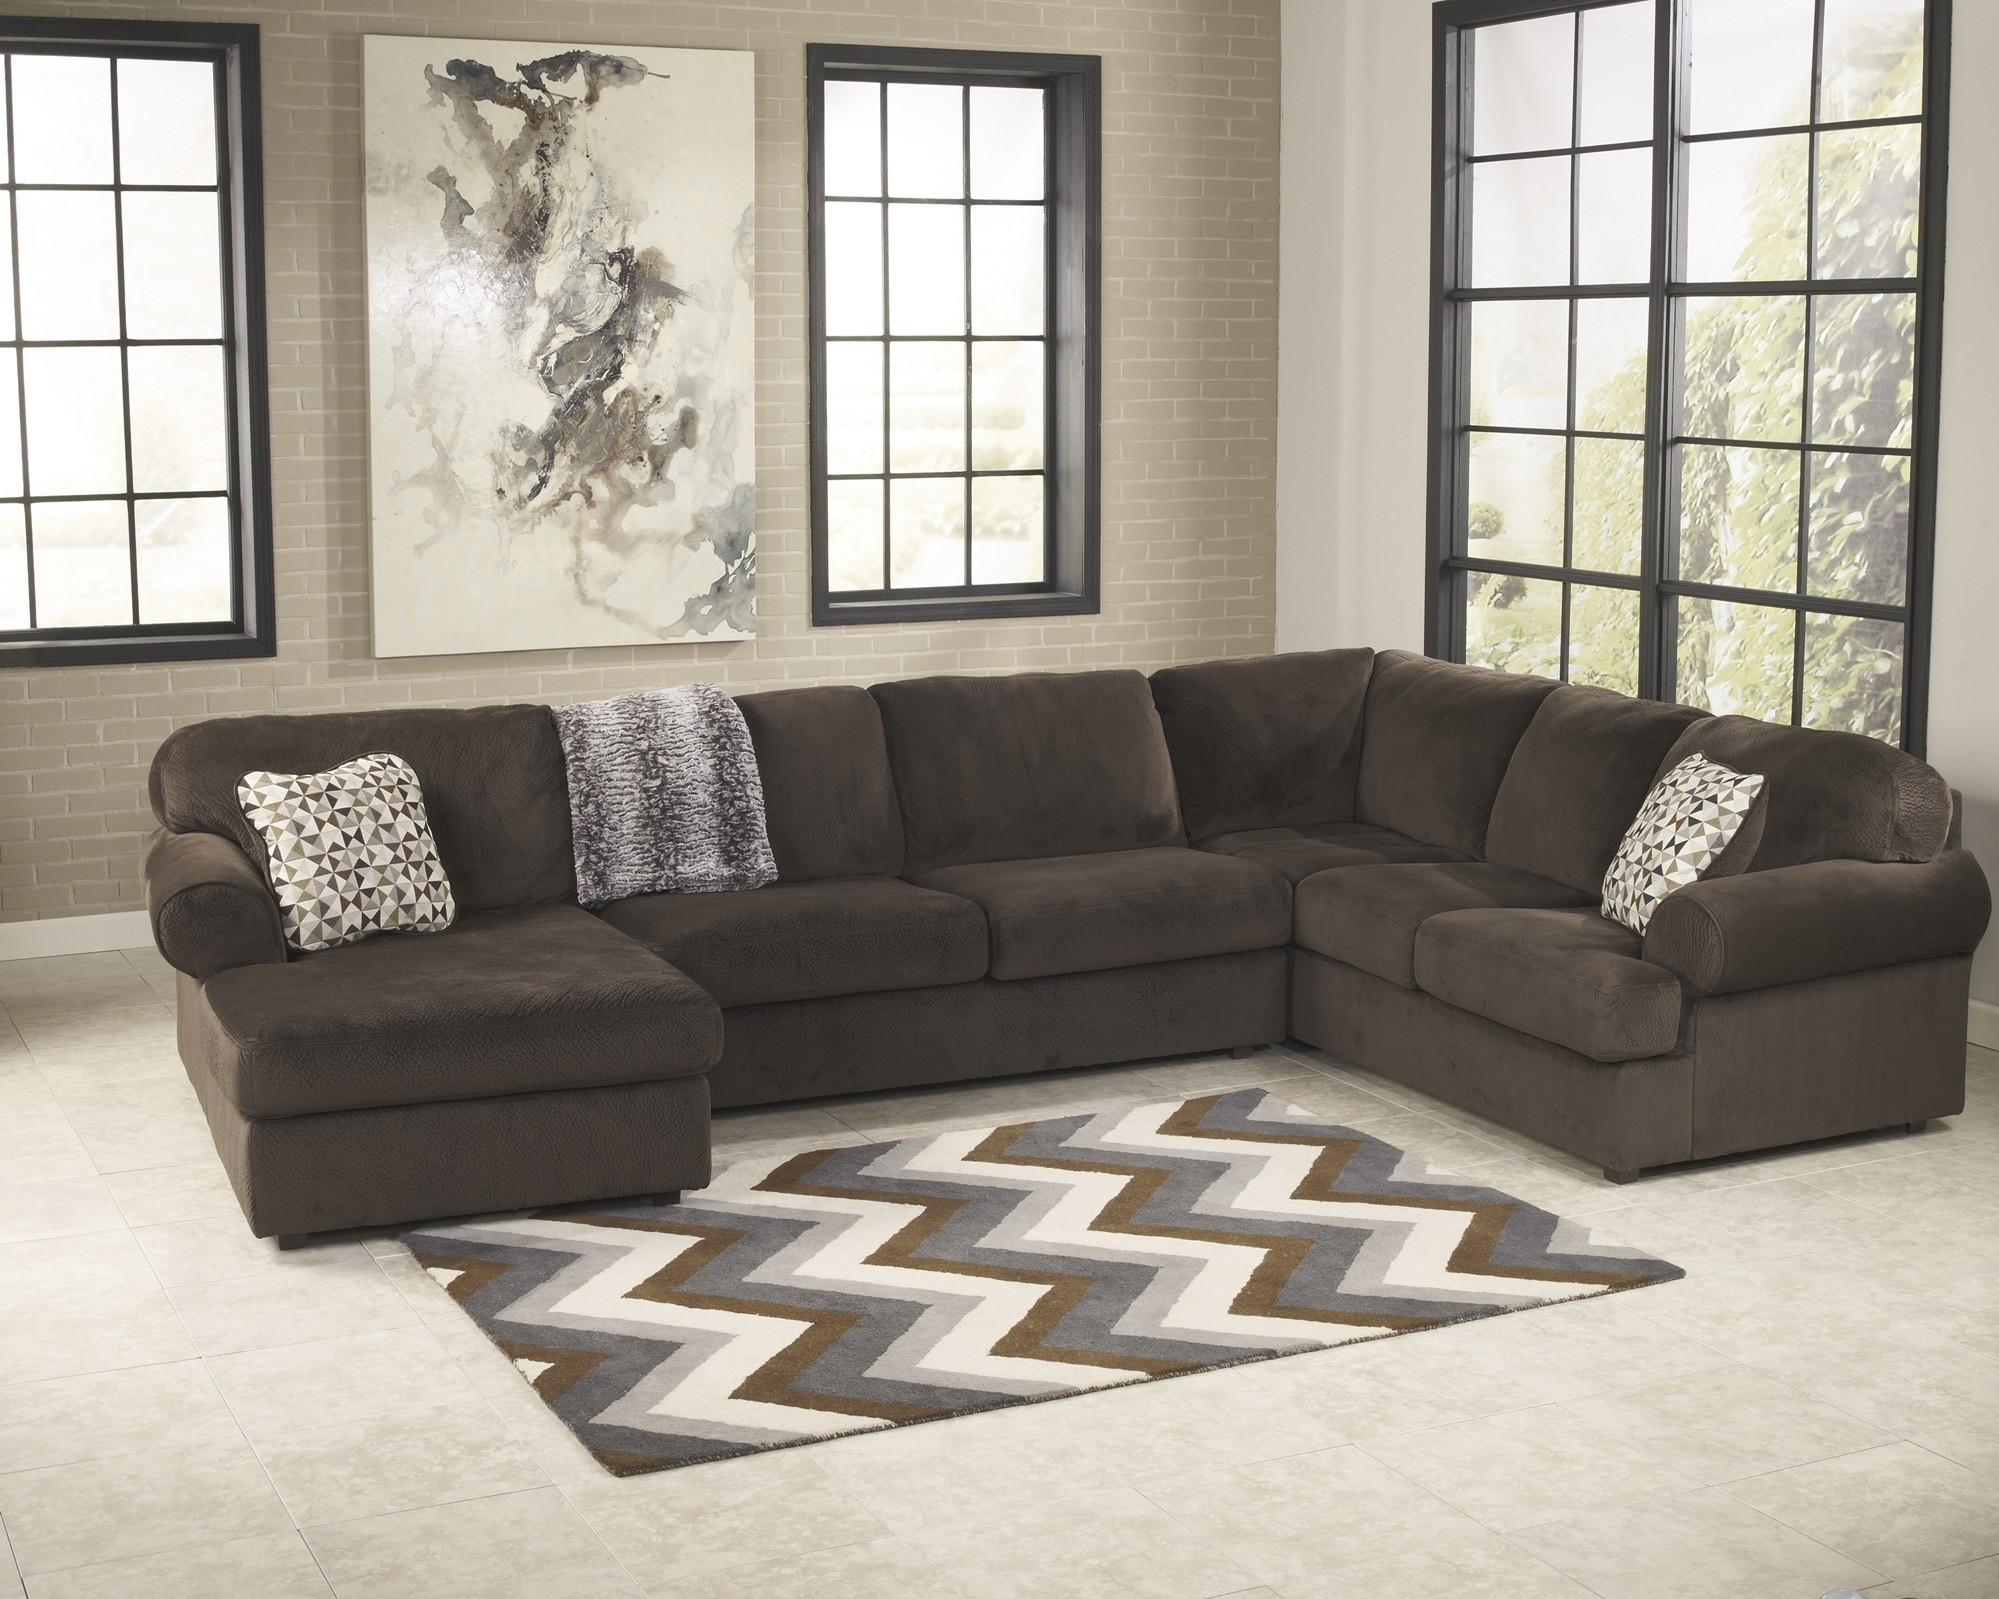 Jessa Place Chocolate 3 Piece Sectional Sofa For $ (View 3 of 10)